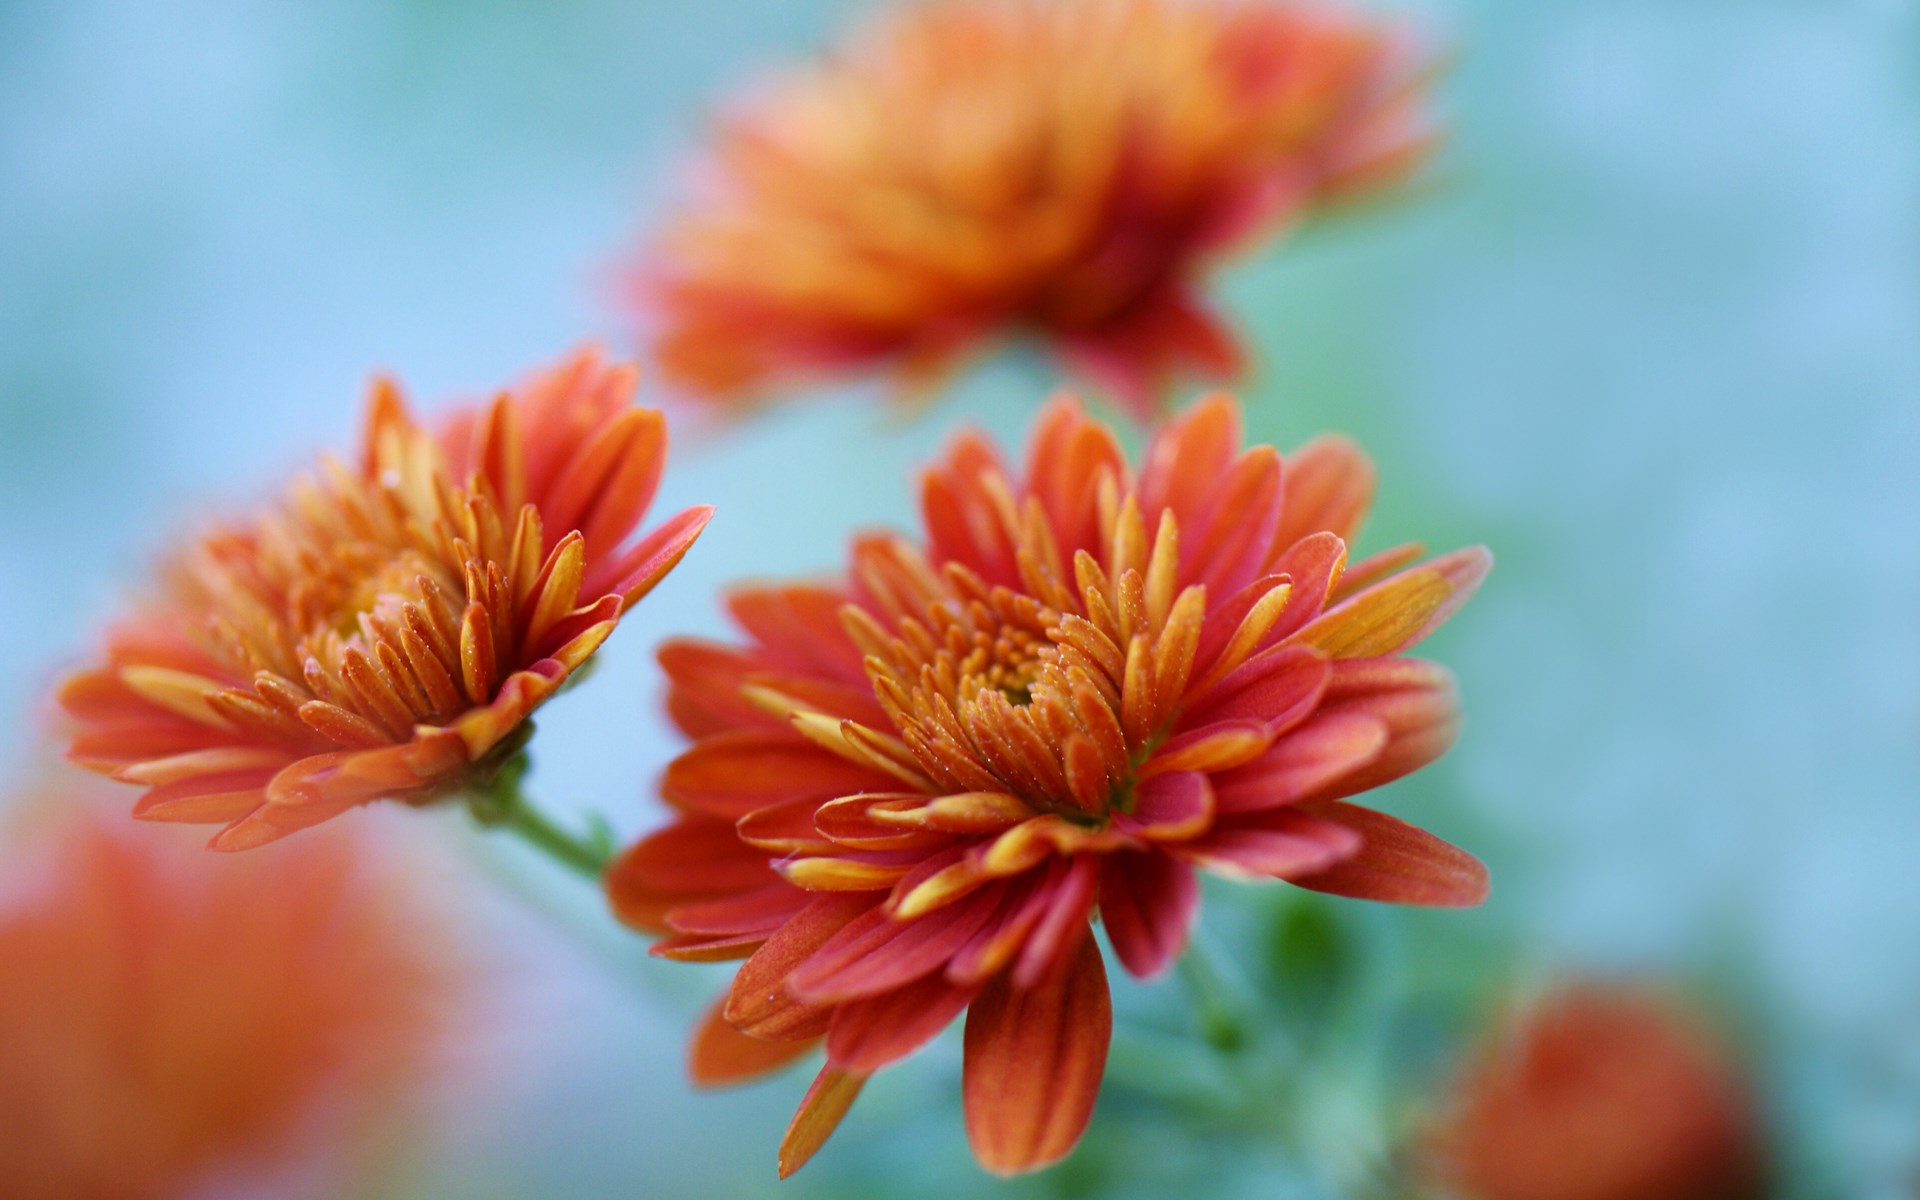 Flower Orange Chrysanthemum Photo